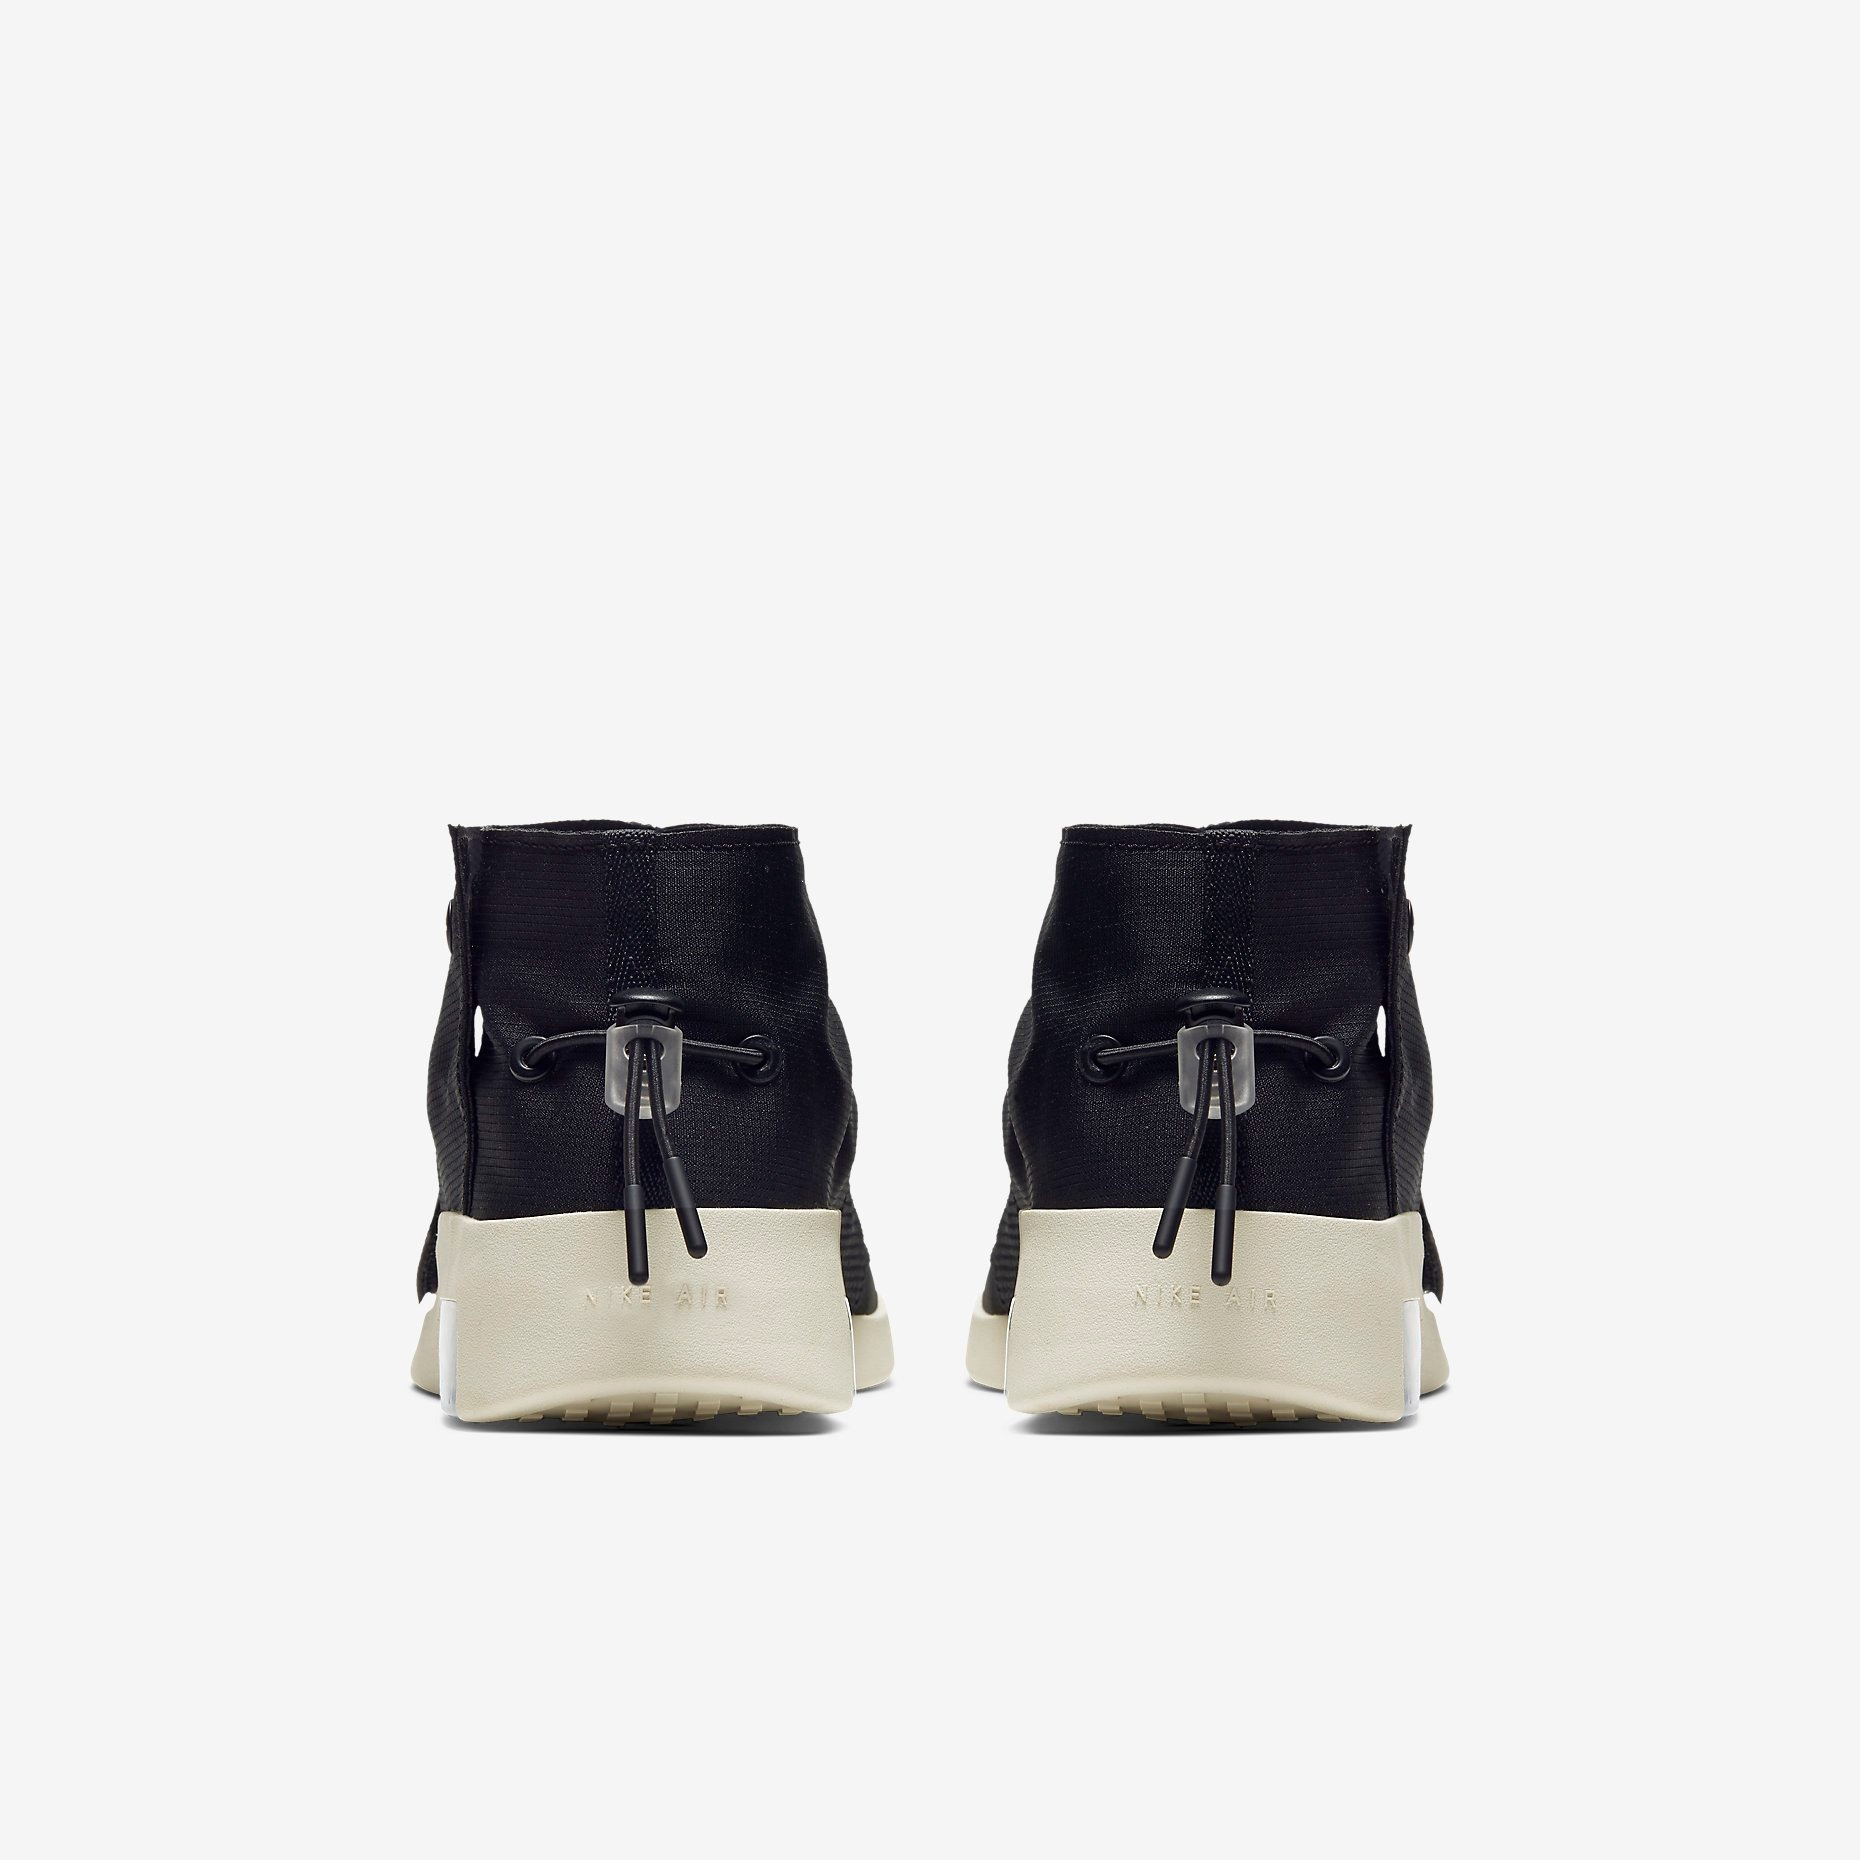 Fear of God x Nike Moccasin Black 4